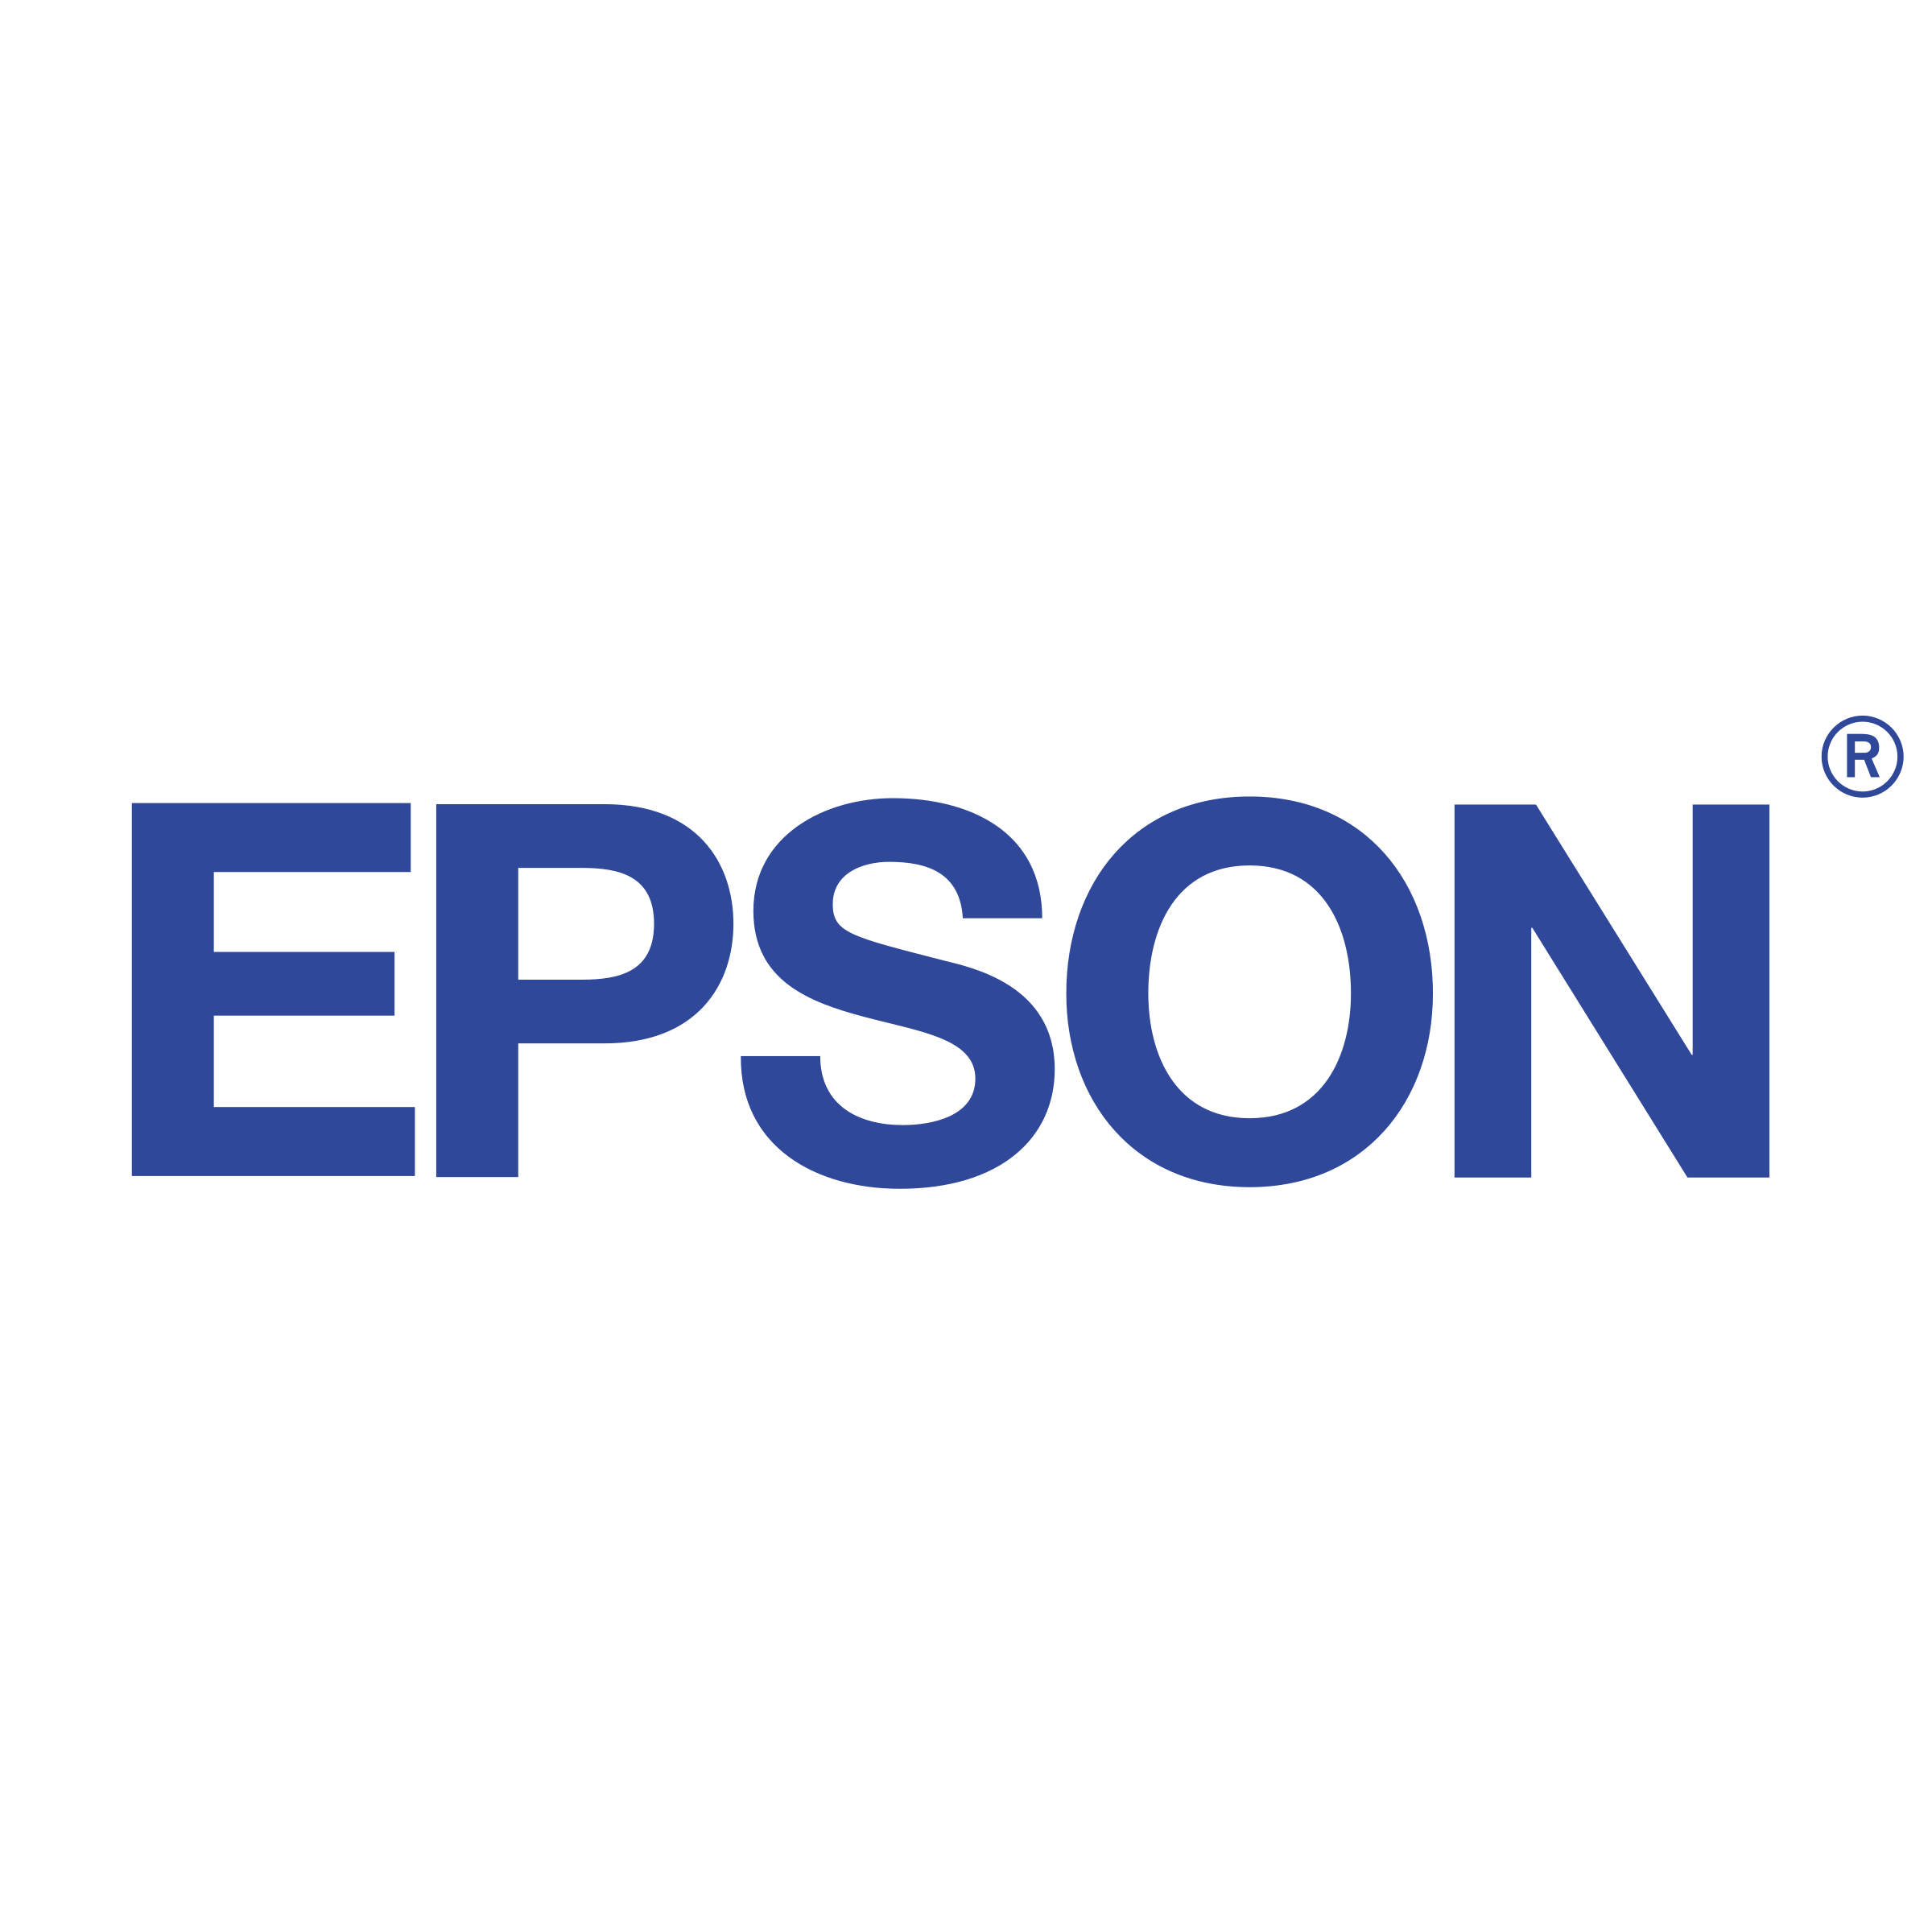 Logo epson download free clipart with a transparent.